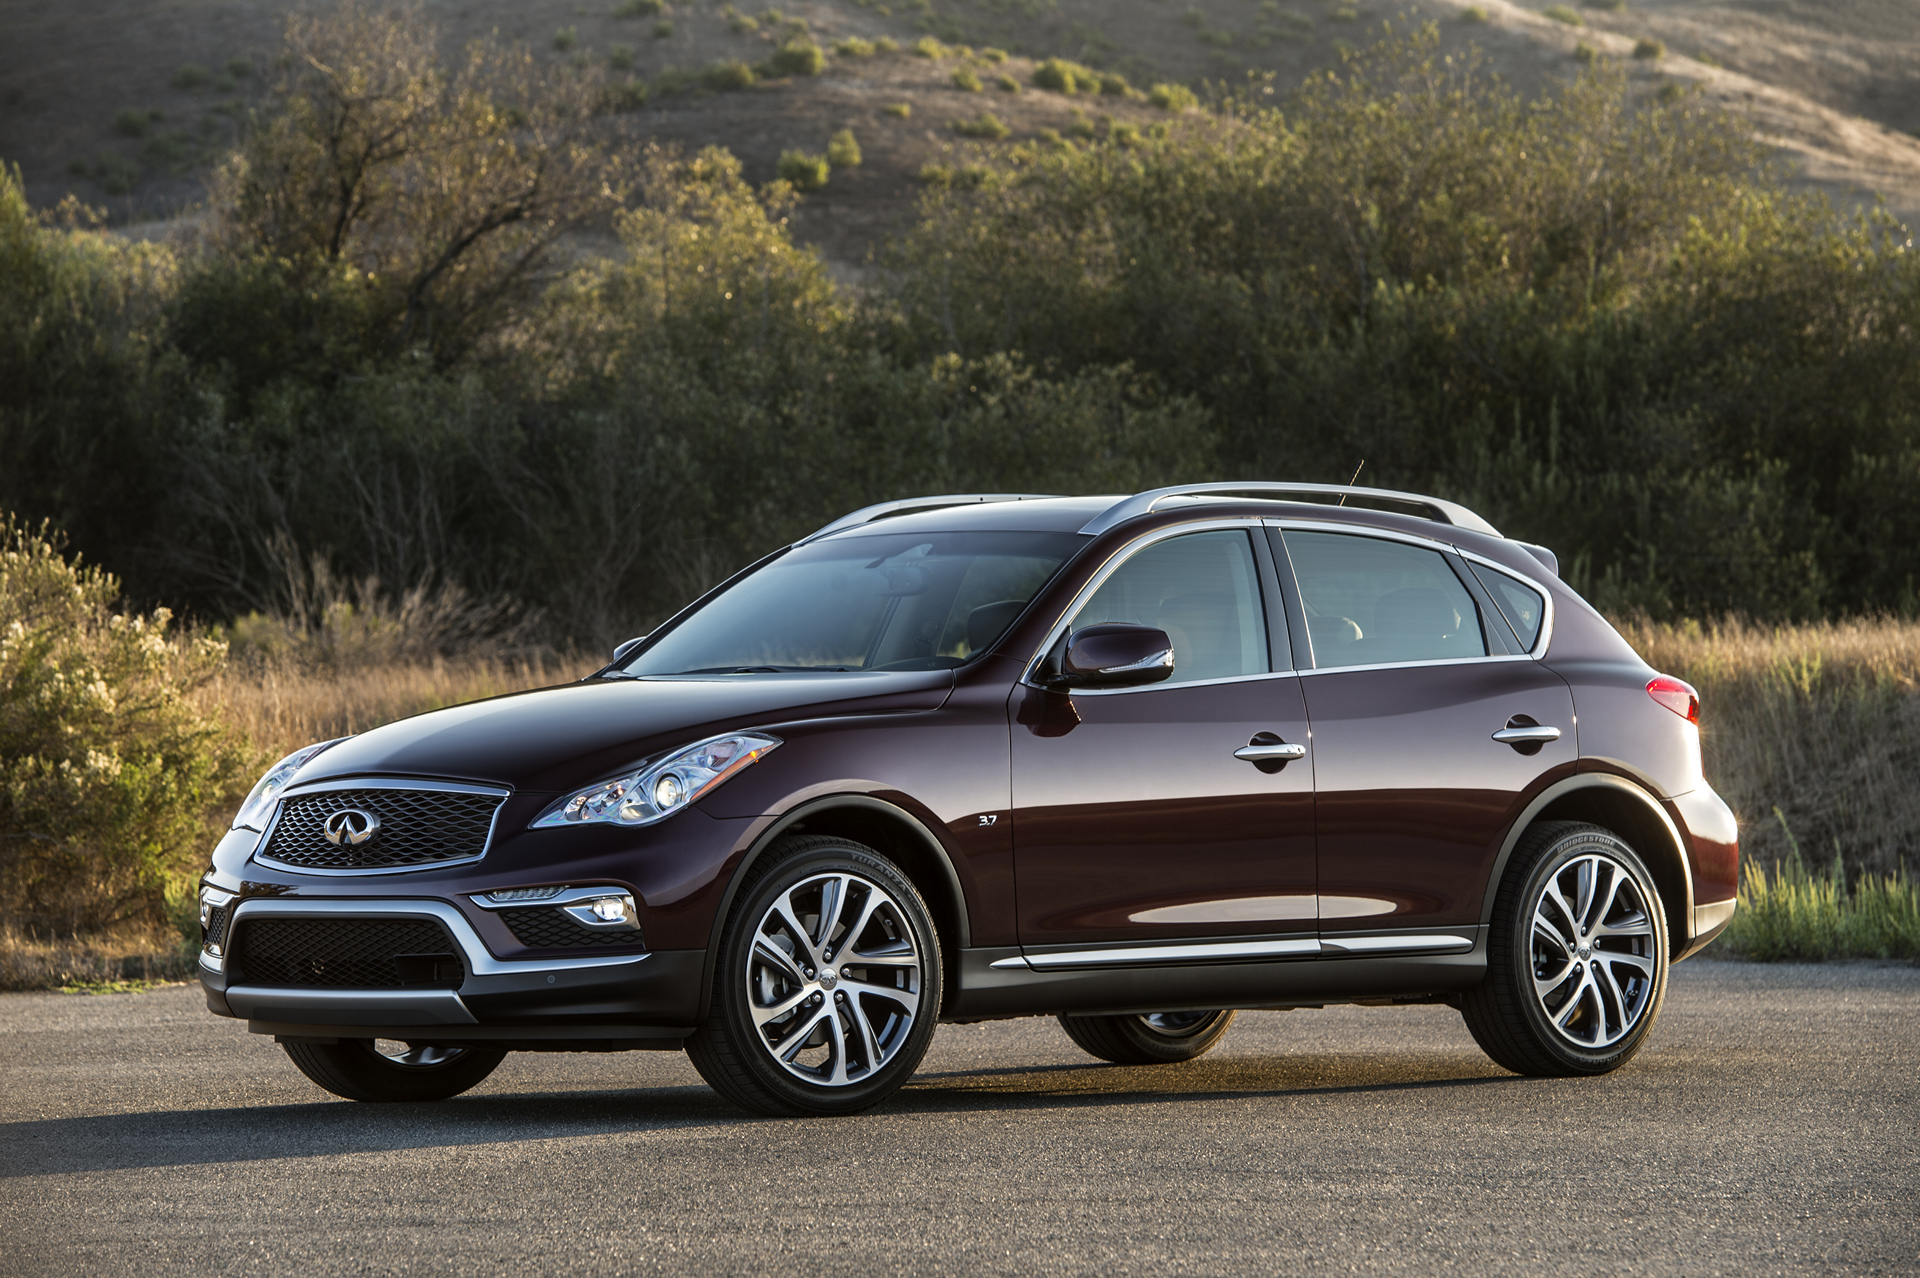 2016 Infiniti QX50 © Nissan Motor Co., Ltd.